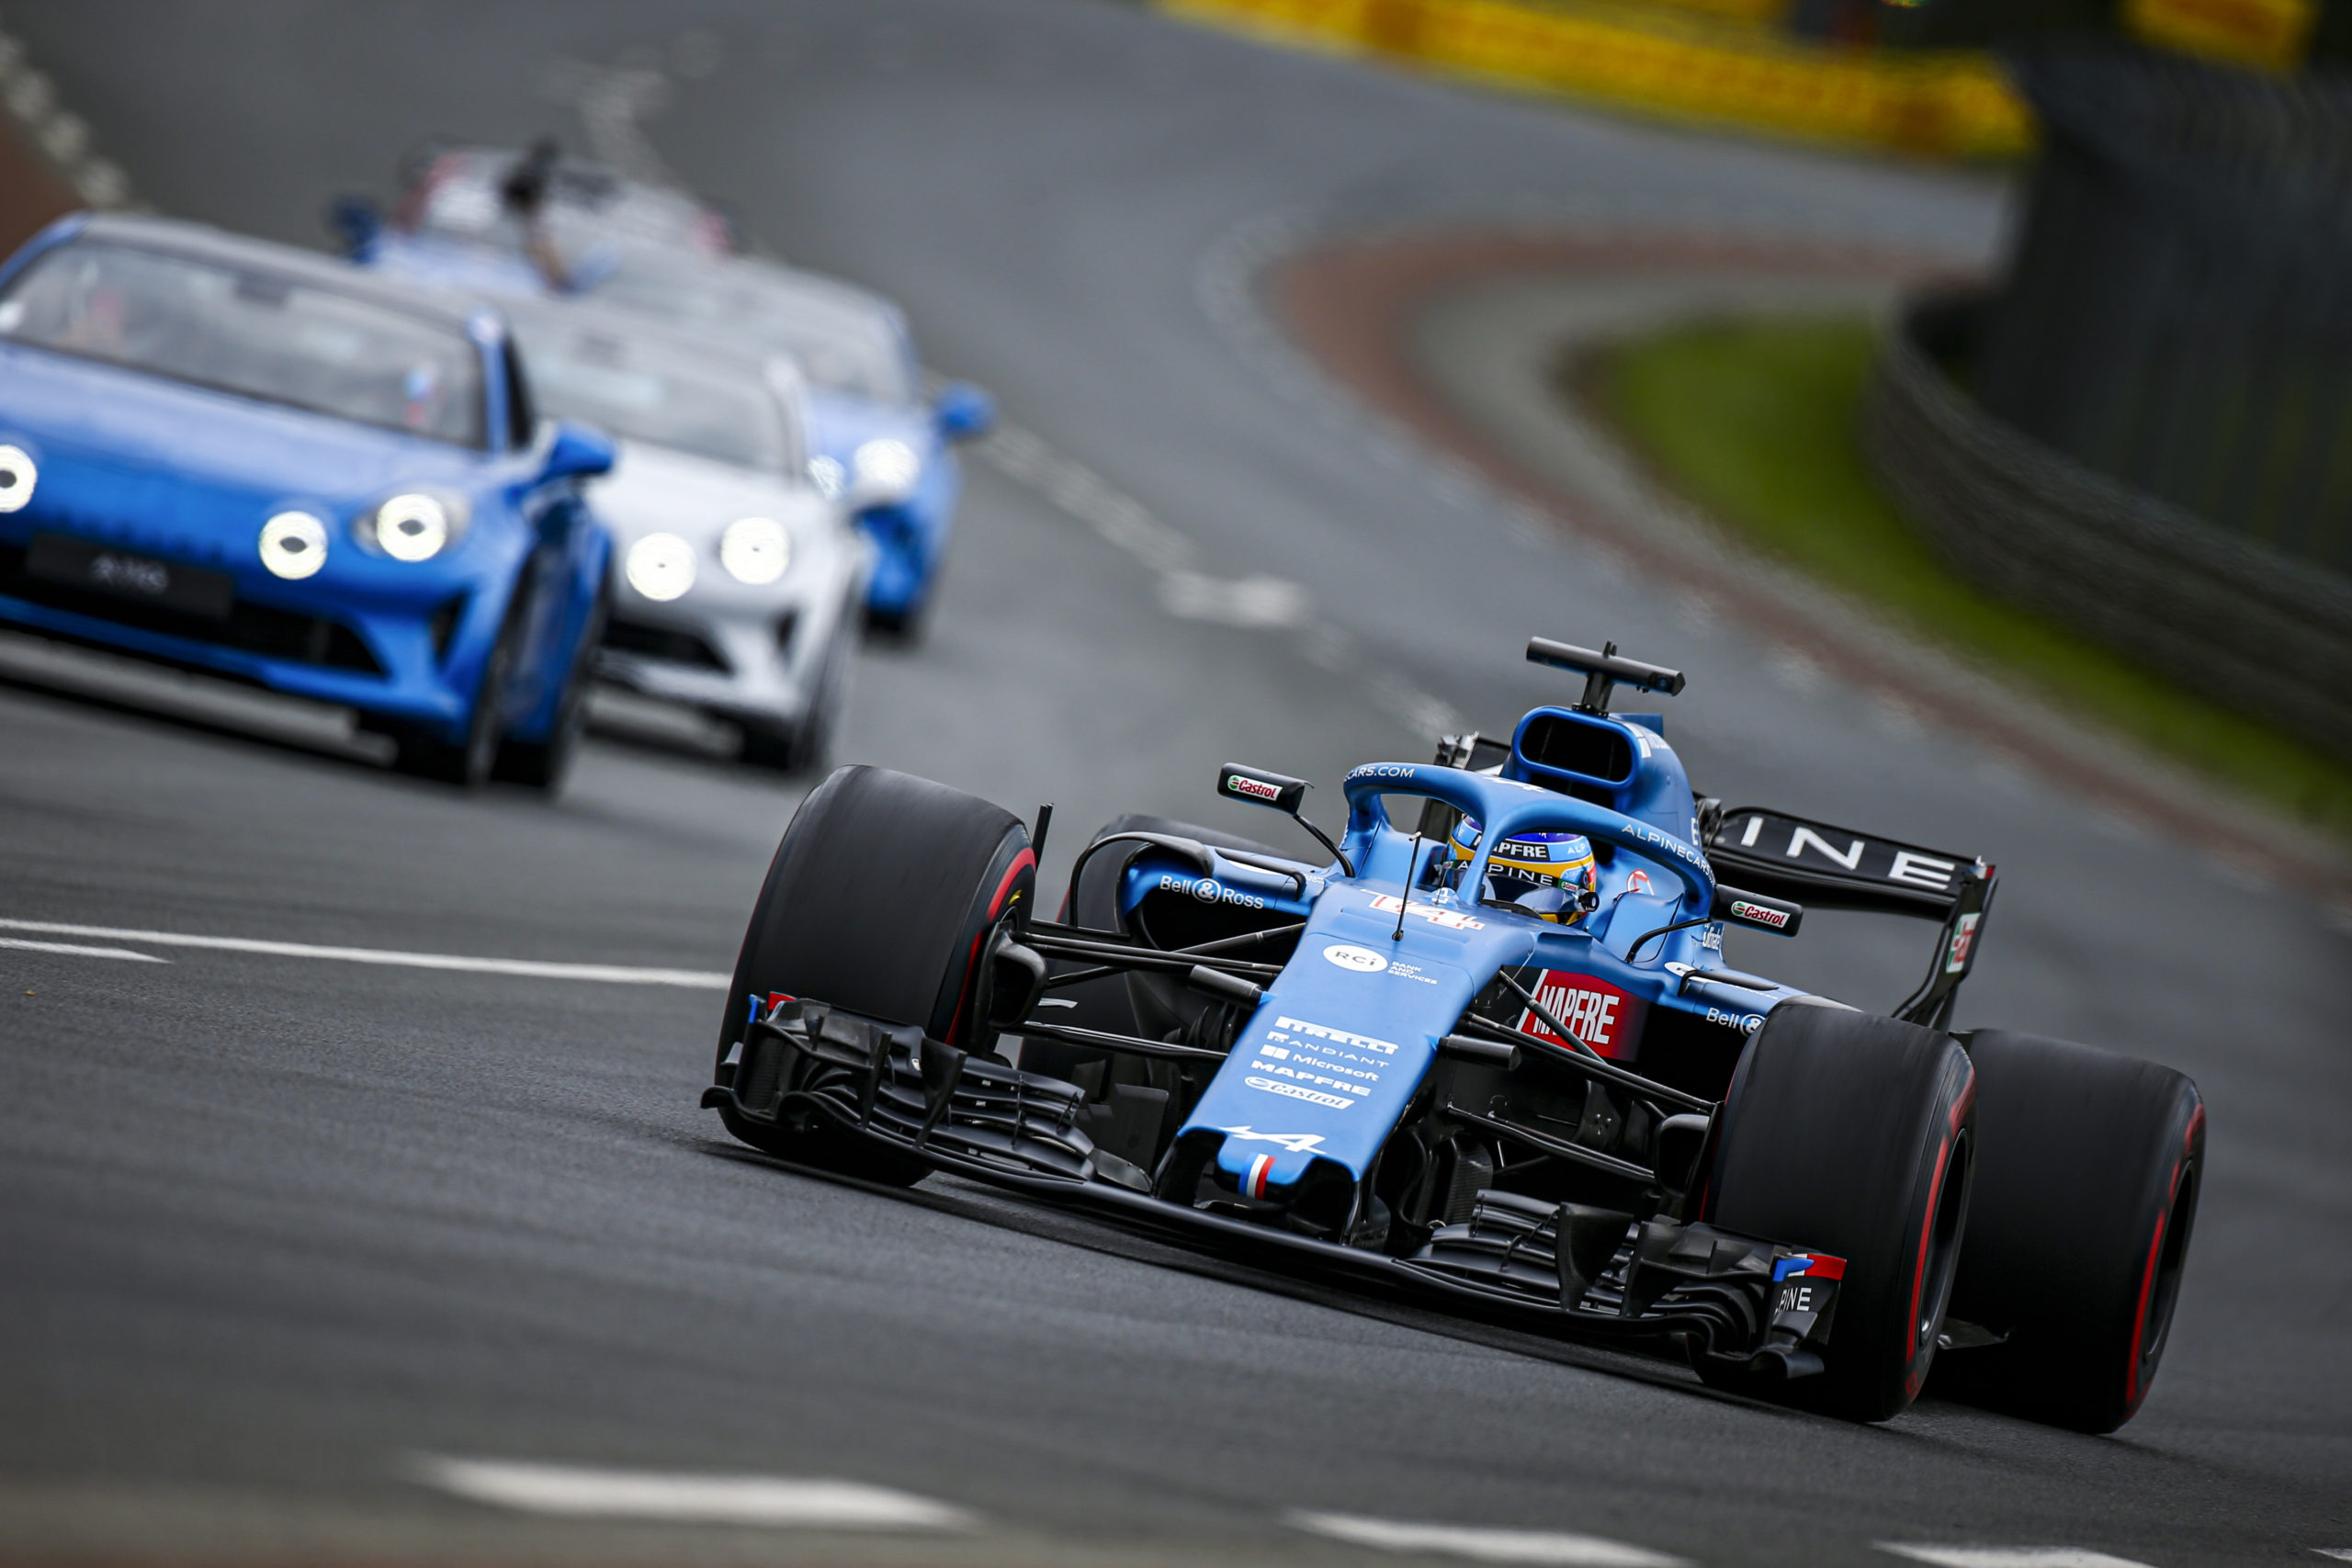 Alonso Fernando (spa), Alpine F1, action during the Alpine Parade prior the 24 Hours of Le Mans 2021, 4th round of the 2021 FIA World Endurance Championship, FIA WEC, on the Circuit de la Sarthe, on August 21 , 2021 in Le Mans, France - Photo Julien Delfosse / DPPI